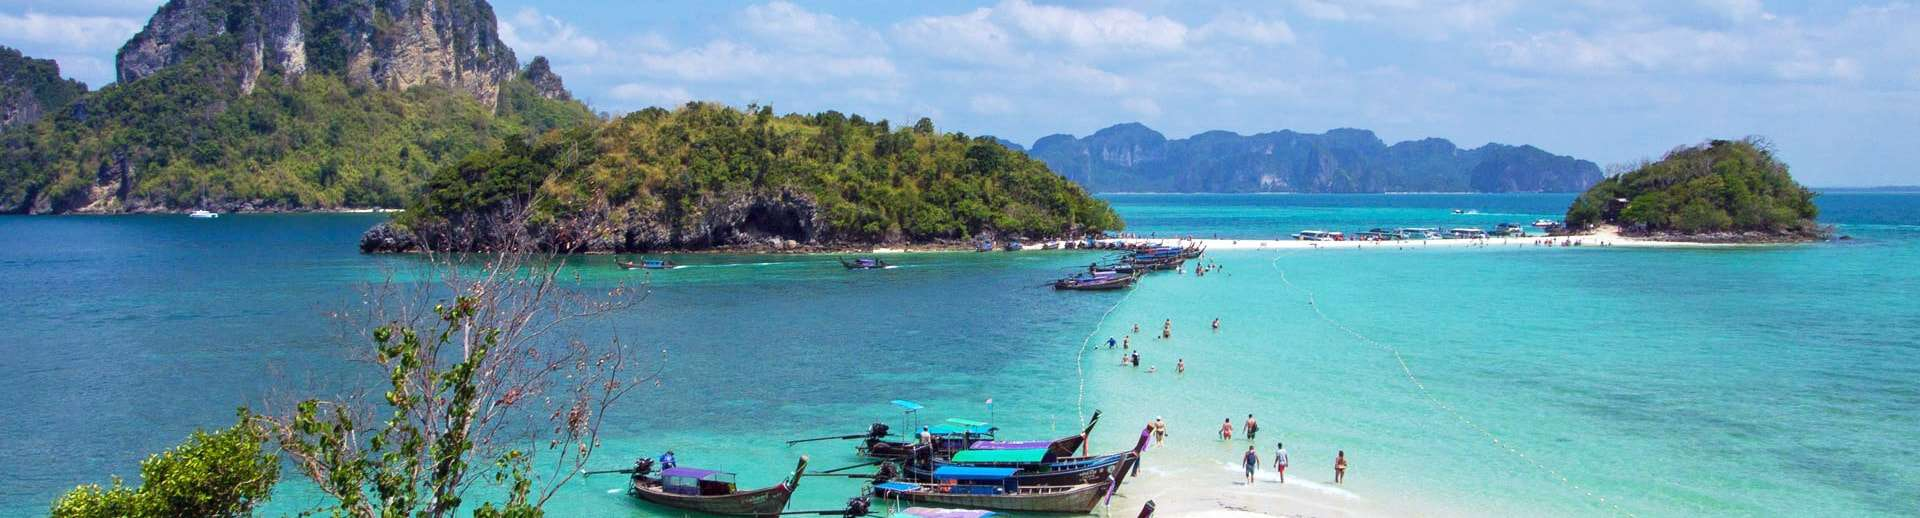 4 islands tour from krabi